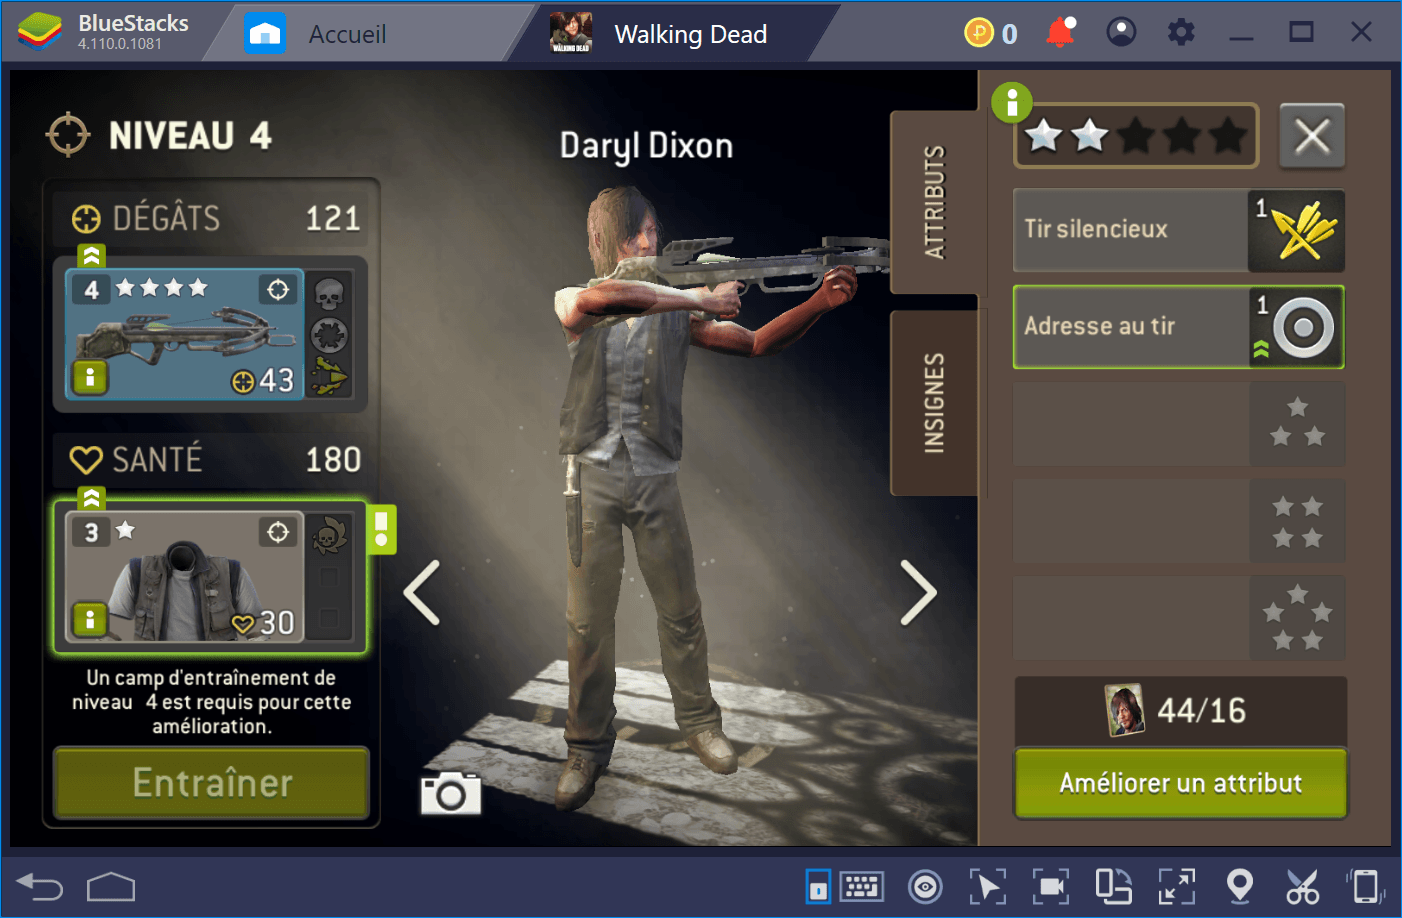 Guide sur les attributs dans Walking Dead No Man's Land